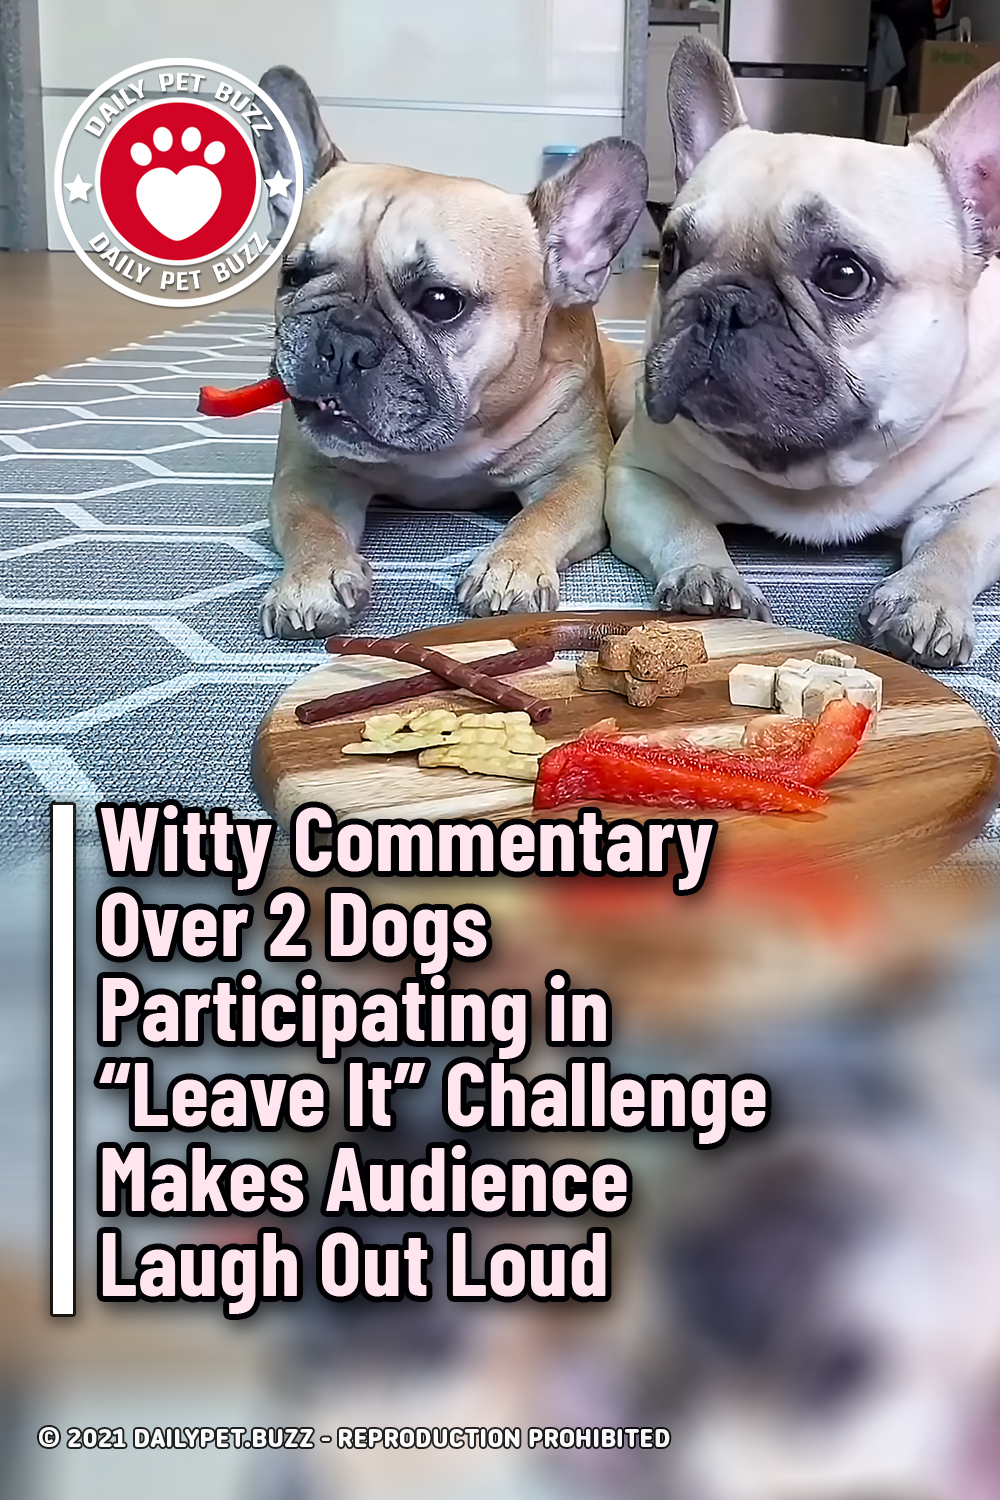 """Witty Commentary Over 2 Dogs Participating in """"Leave It"""" Challenge Makes Audience Laugh Out Loud"""